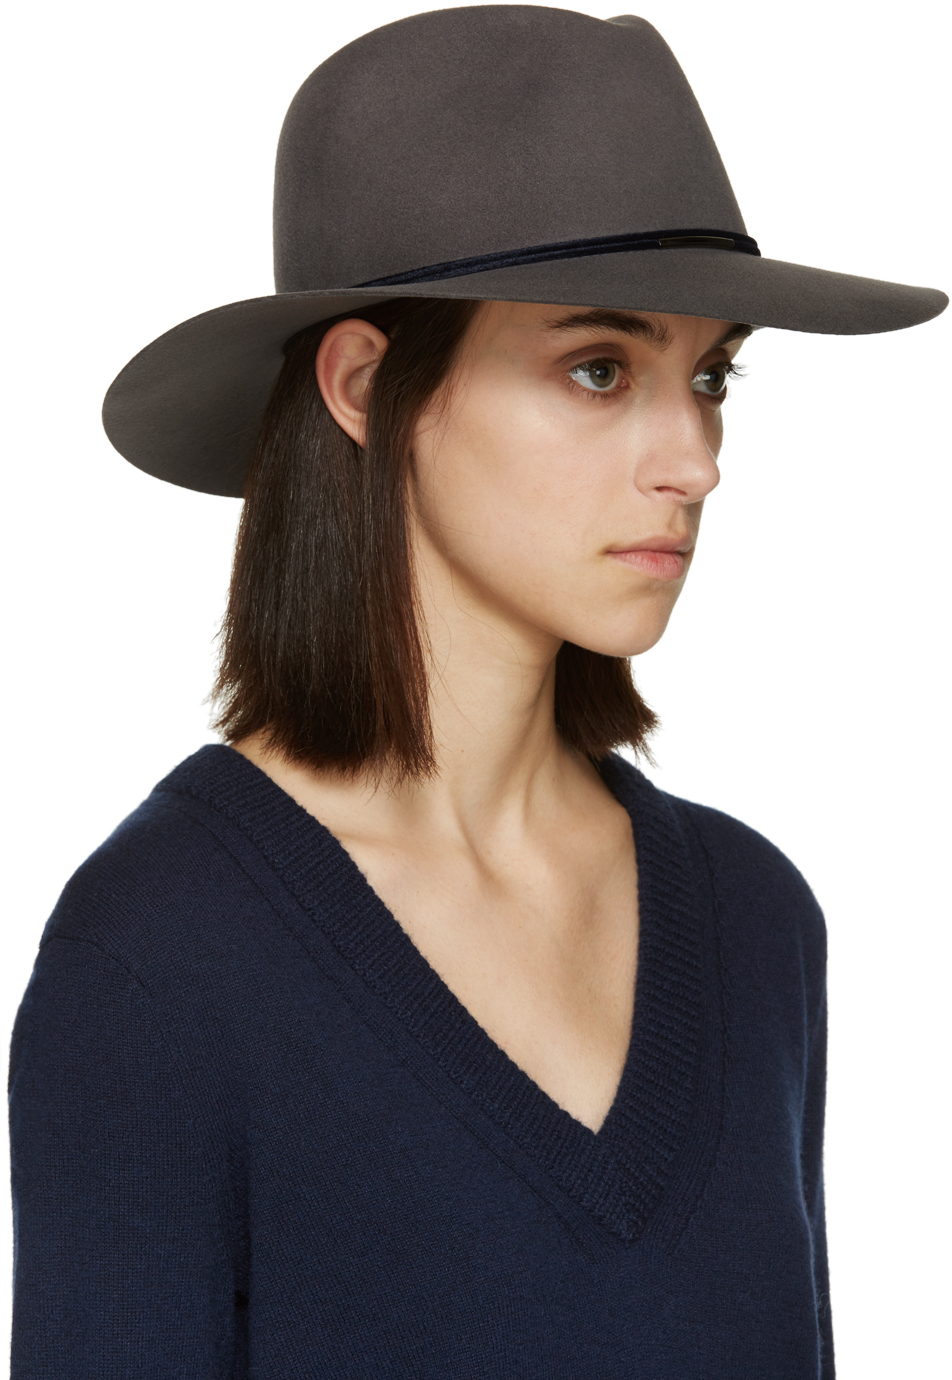 Lyst - Rag   Bone Grey Wool Range Fedora in Gray 4d3739d8e17